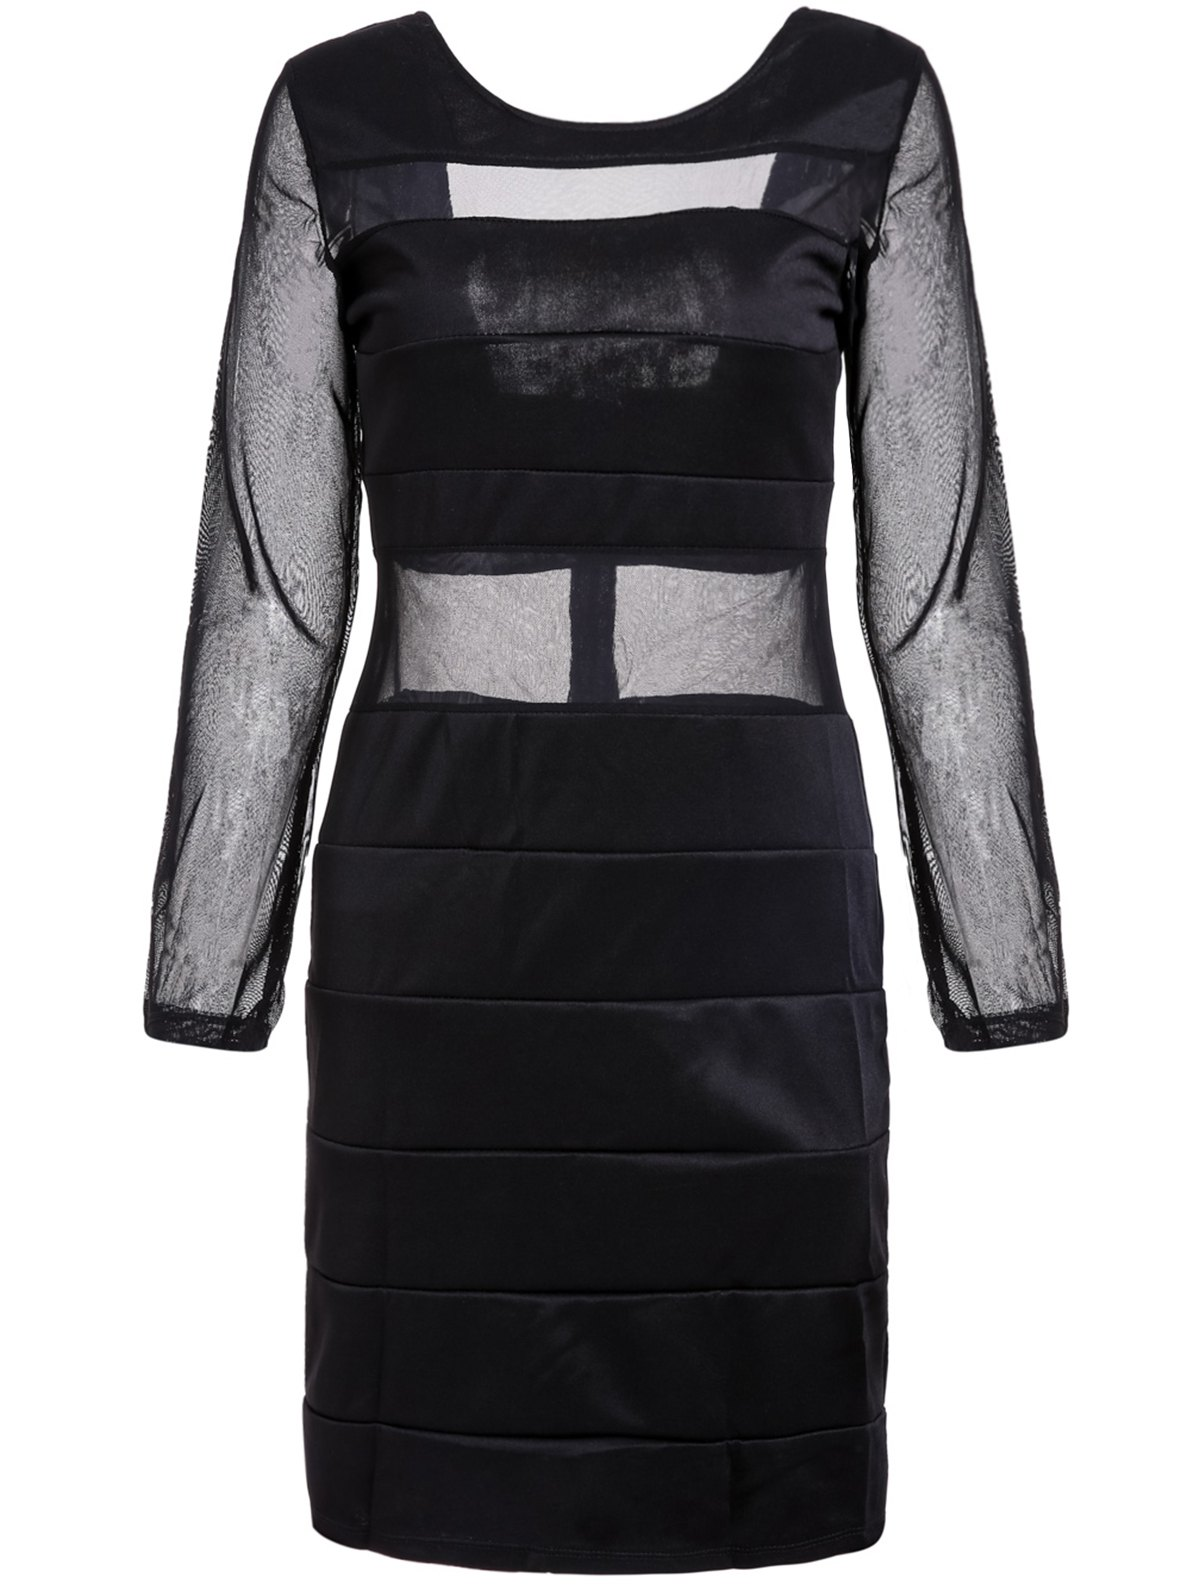 Sexy Scoop Neck Long Sleeve Mesh Splicing Backless Dress For Women - BLACK ONE SIZE